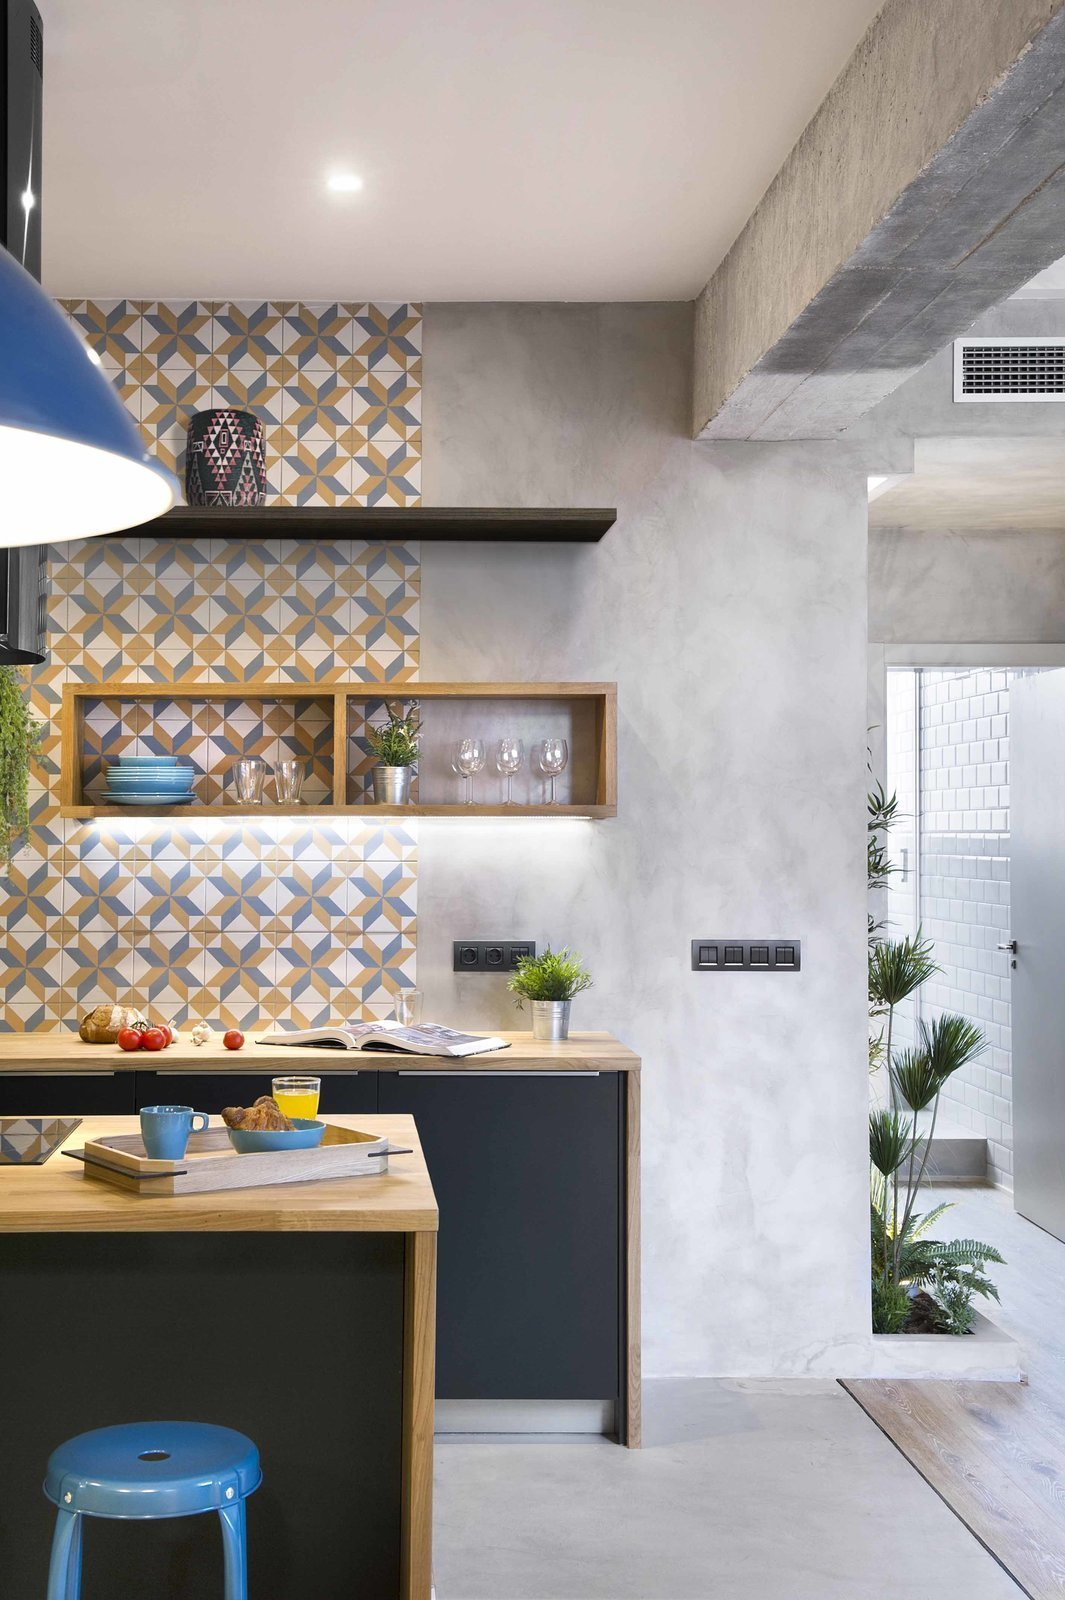 Geometric-patterned, hydraulic-imitation tiles from Portuguese brand Recer in grey, mustard, and white used for the backsplash, and a feature wall gives this Barcelona apartment plenty of vibrant charm. Tagged: Kitchen, Wood Counter, Cooktops, Medium Hardwood Floor, Concrete Floor, Ceramic Tile Backsplashe, Pendant Lighting, Recessed Lighting, and Open Cabinet.  Photo 8 of 12 in 12 Brilliant Kitchen Backsplash Ideas